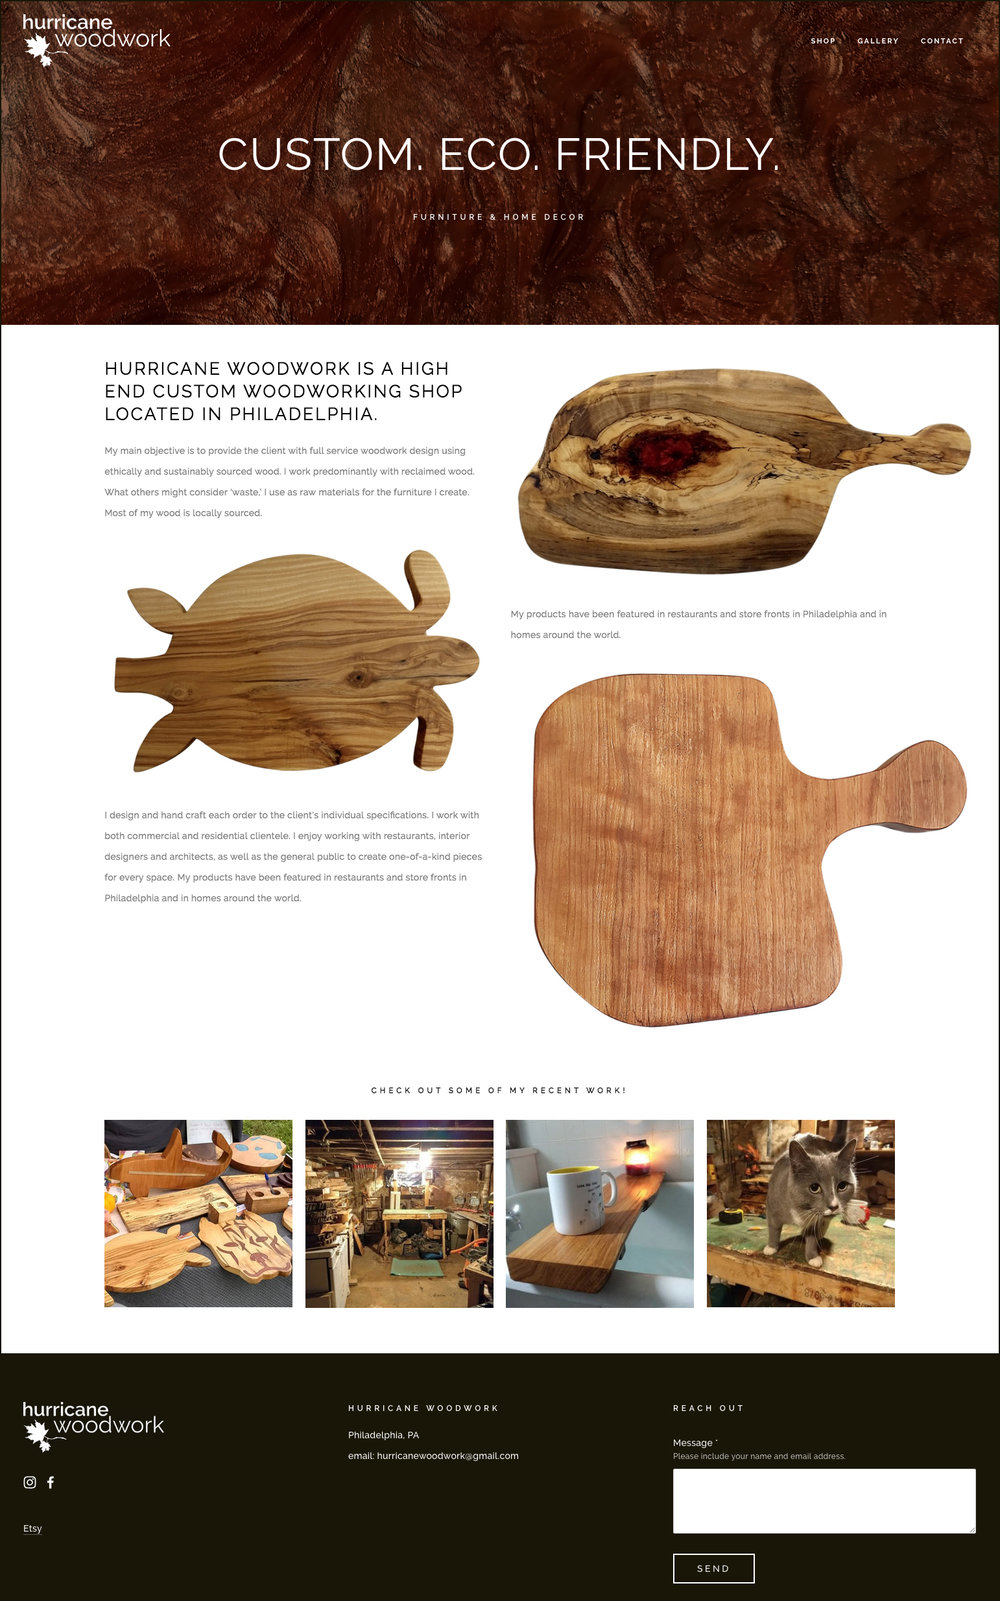 Hurricane-Woodwork-web-homepage.jpg